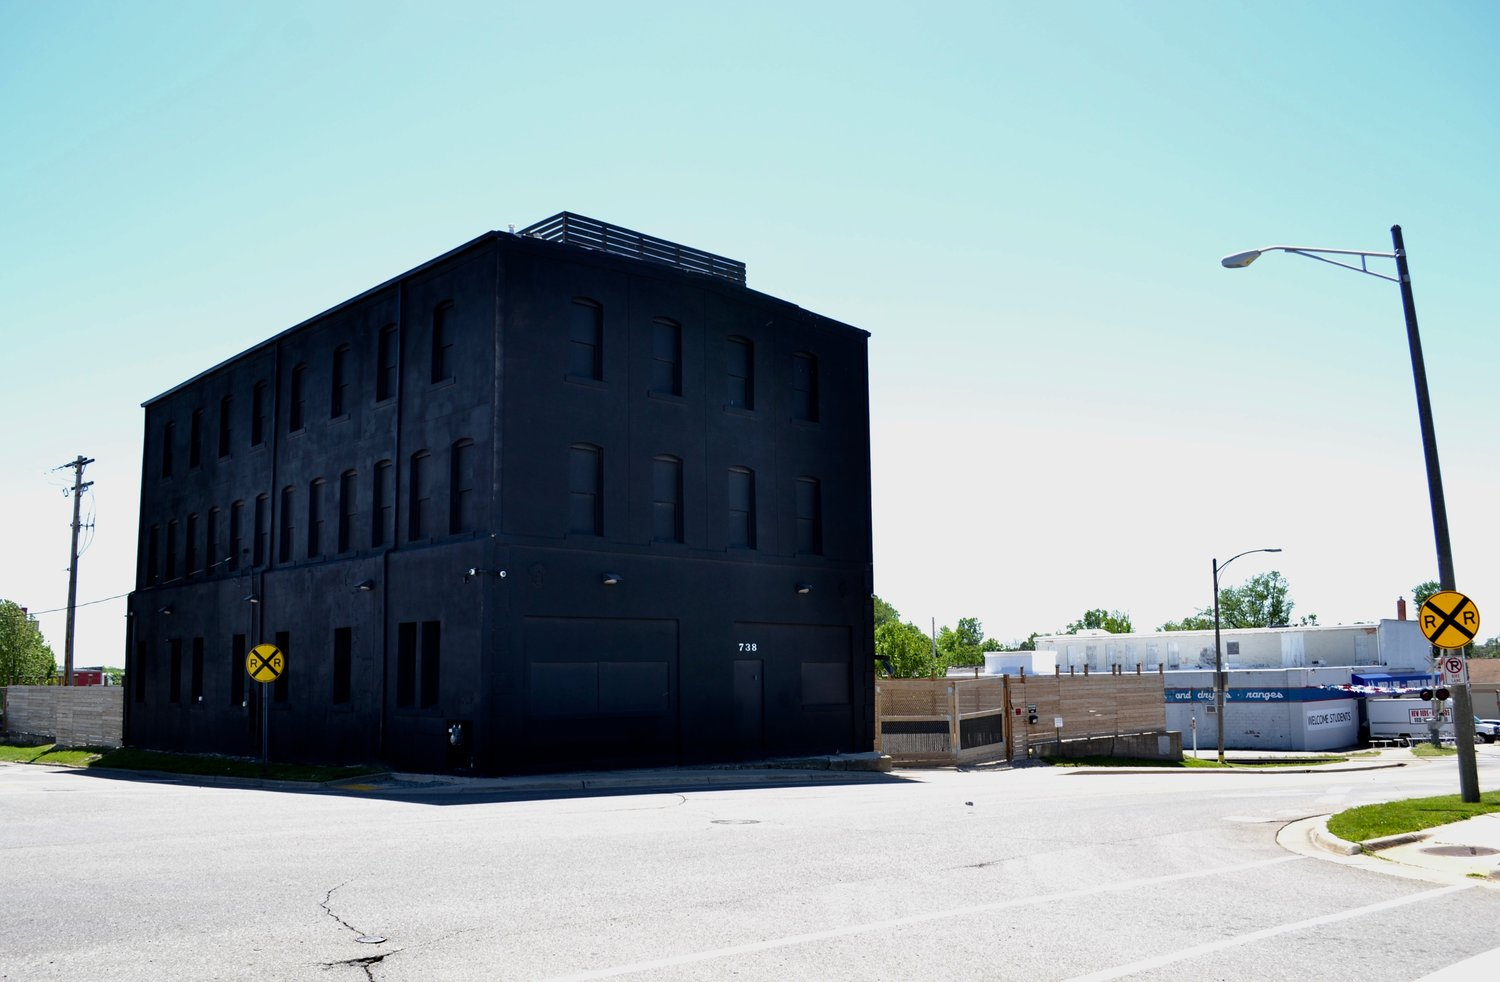 A soon-to-be marijuana growing facility has caught attention due to its striking all black paint job.